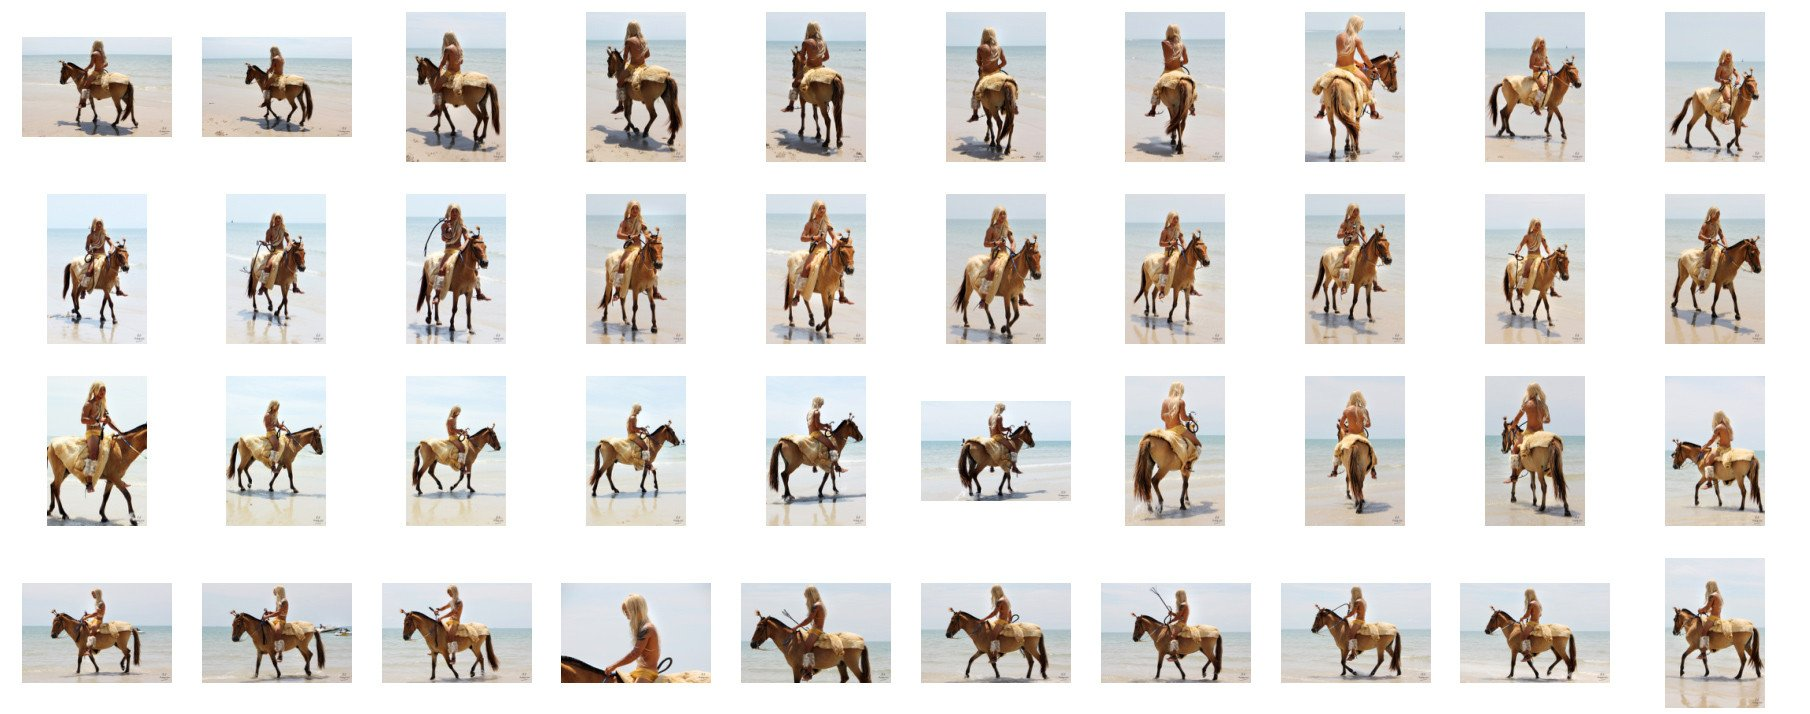 David in Fur Coat Riding Bareback on Golden Pony, Part 6 - Riding.Vision